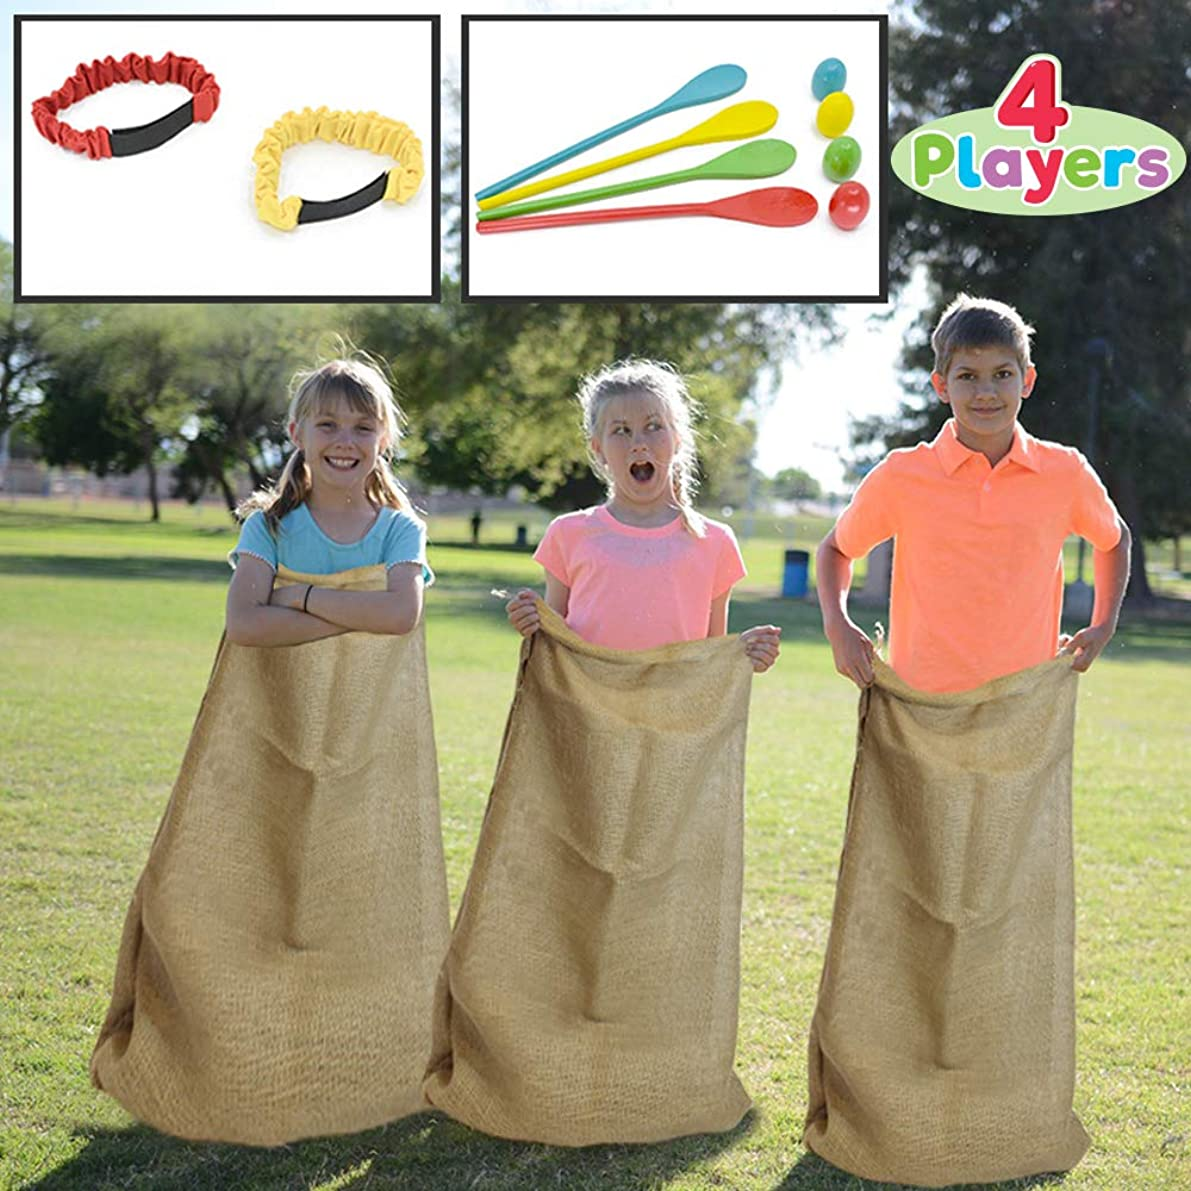 4 Players Outdoor Lawn Games; Potato Sack Race Bags, Egg and Spoon Race Games, Legged Relay Race Bands Elastic Tie Rope for All Ages Kids and Family, Outside Easter Eggs Hunt Game Party Favor Activities, Carnival Game Party Supplies.